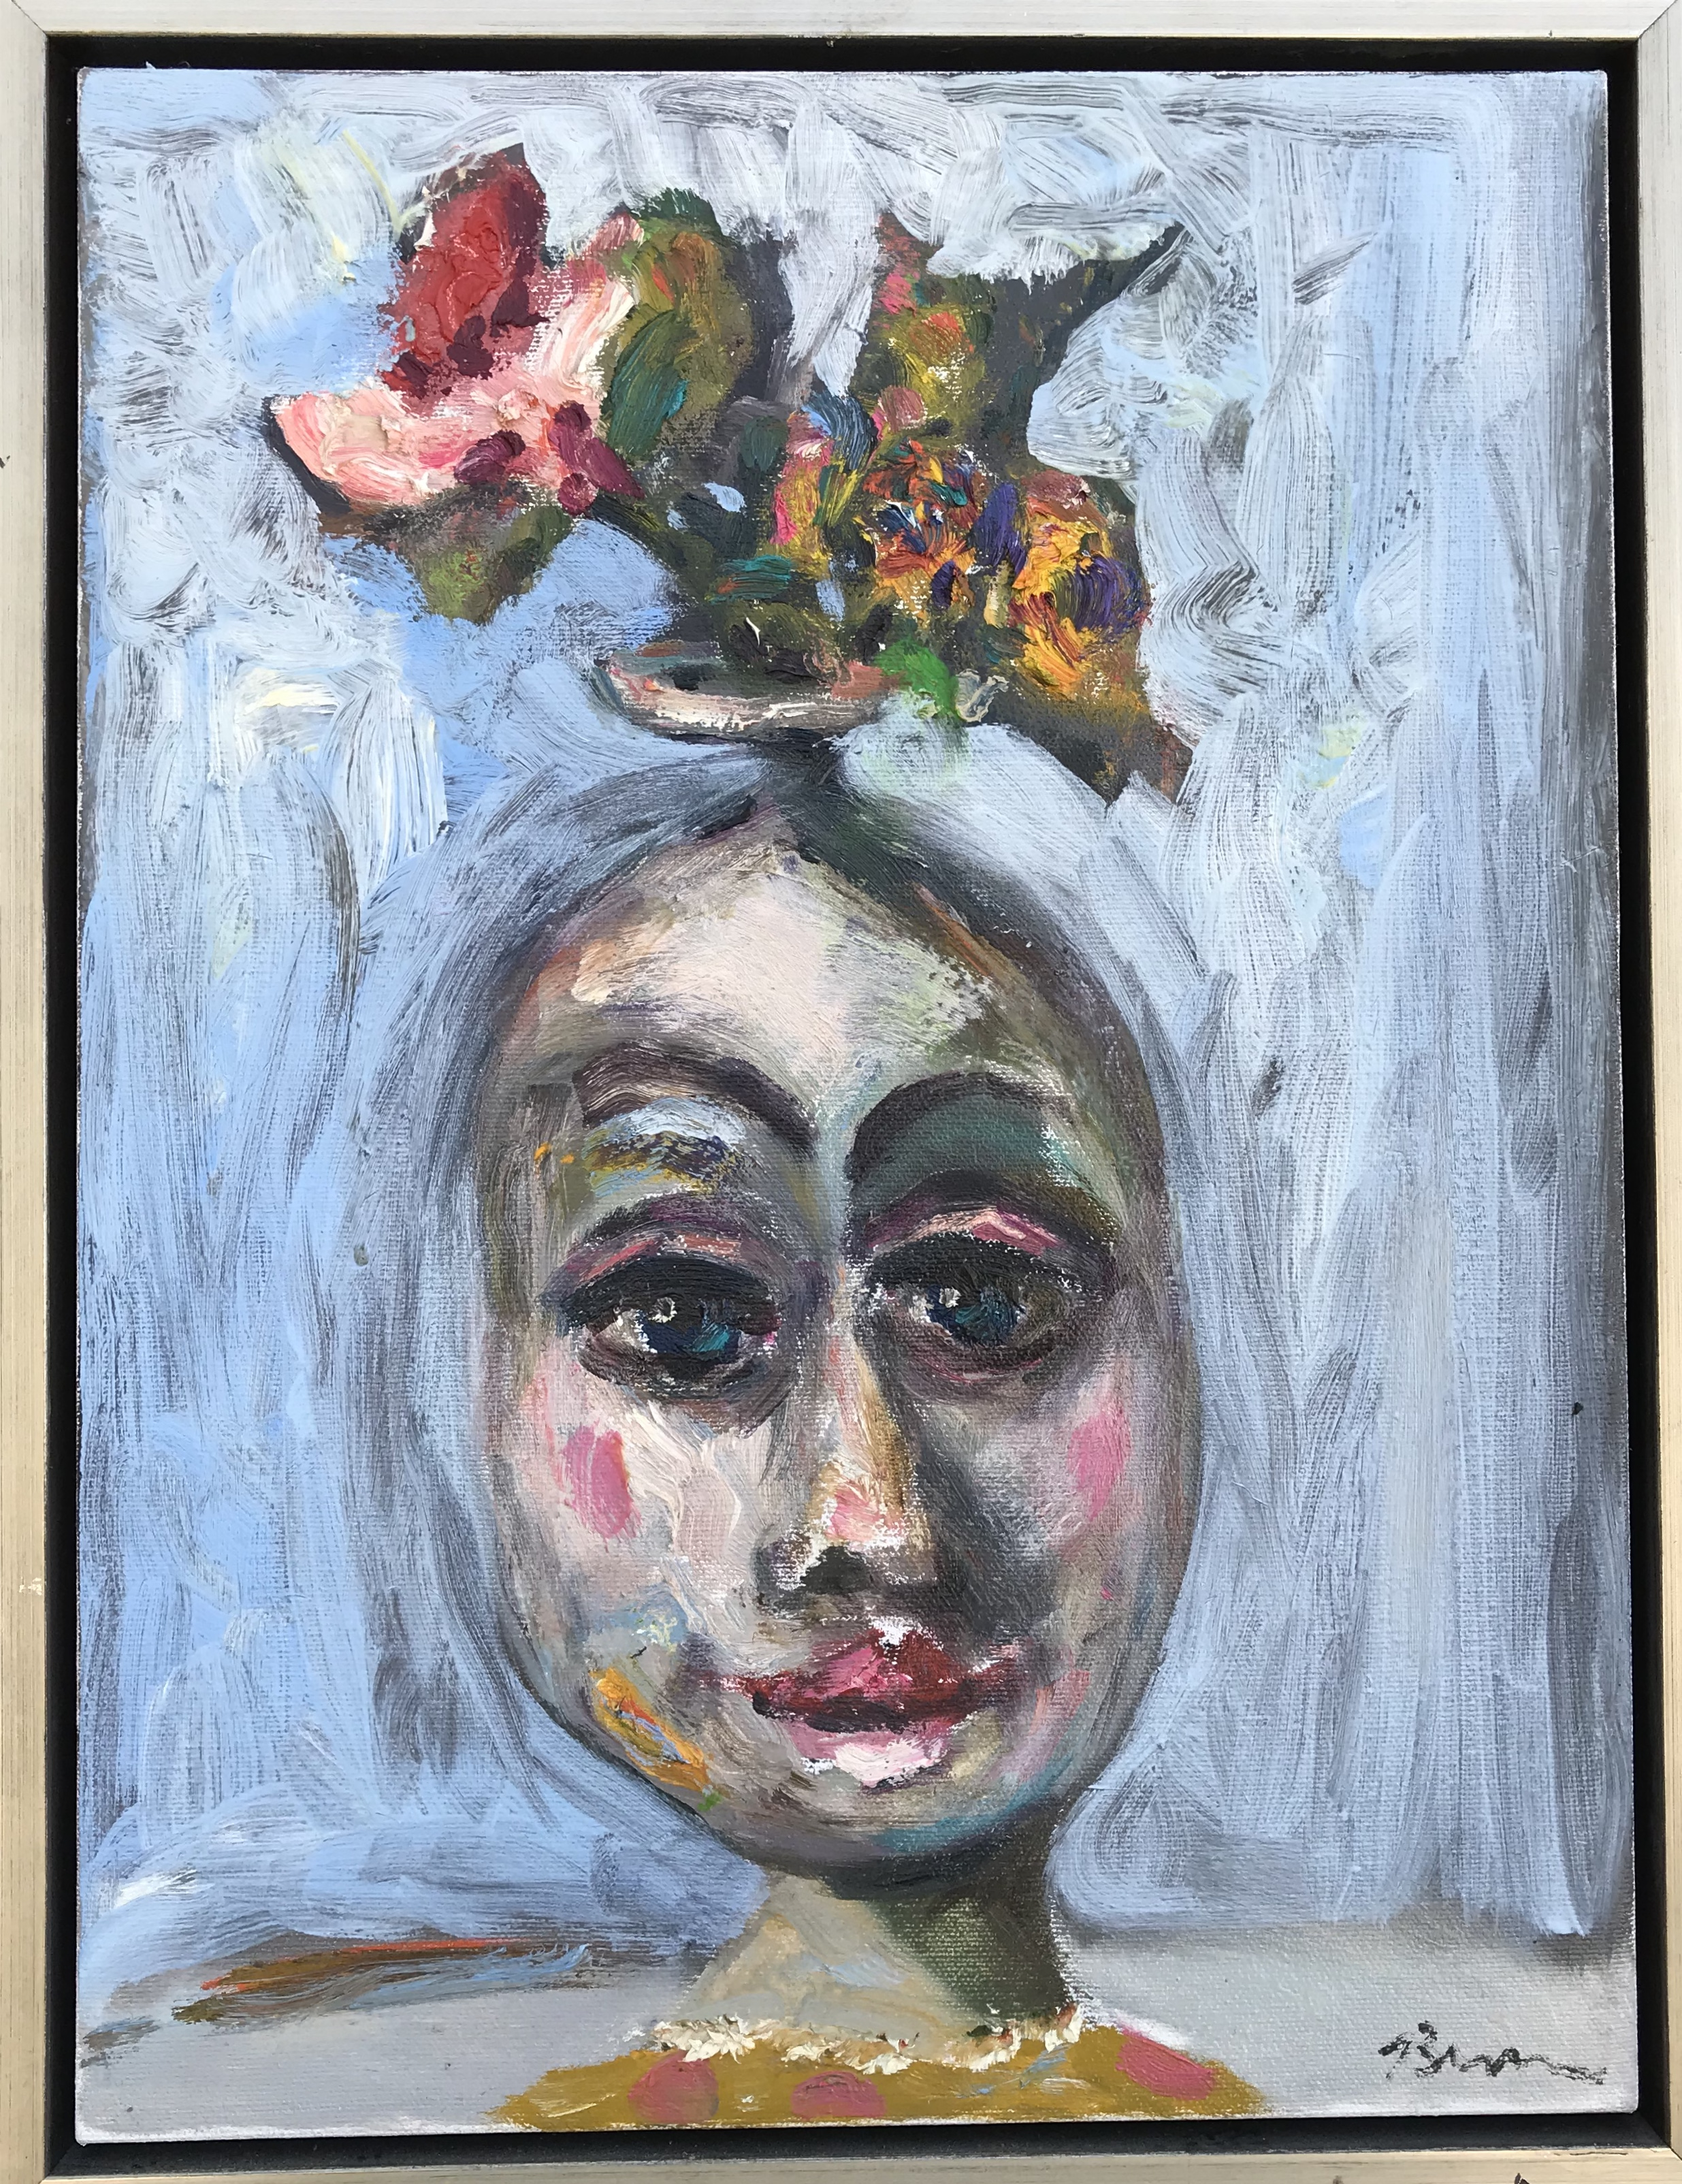 """""""Pot Head"""" - 16"""" x 12"""", in 2 1/2"""" plated silver wood floating frame, oil on canvasValue: $1,200Opening bid: $450email your bid to: art@bradfordbrenner.com"""